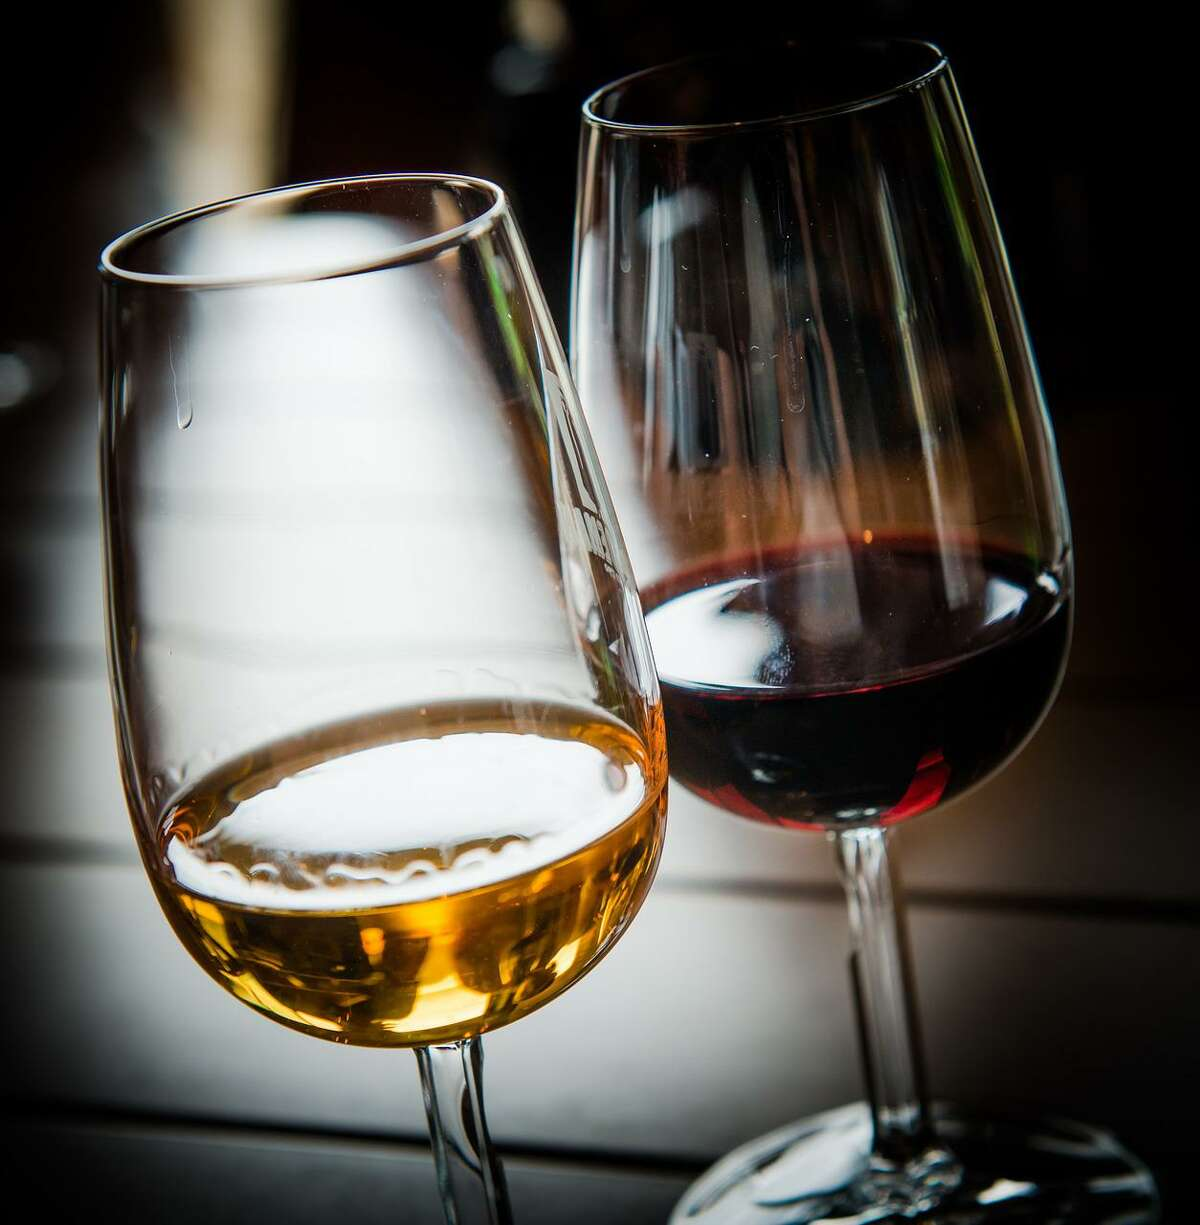 Trumbull Center Lions Club is holding their annual wine tasting event Saturday, Nov. 2, from 6:30-9 p.m., at St. Theresa School Hall.